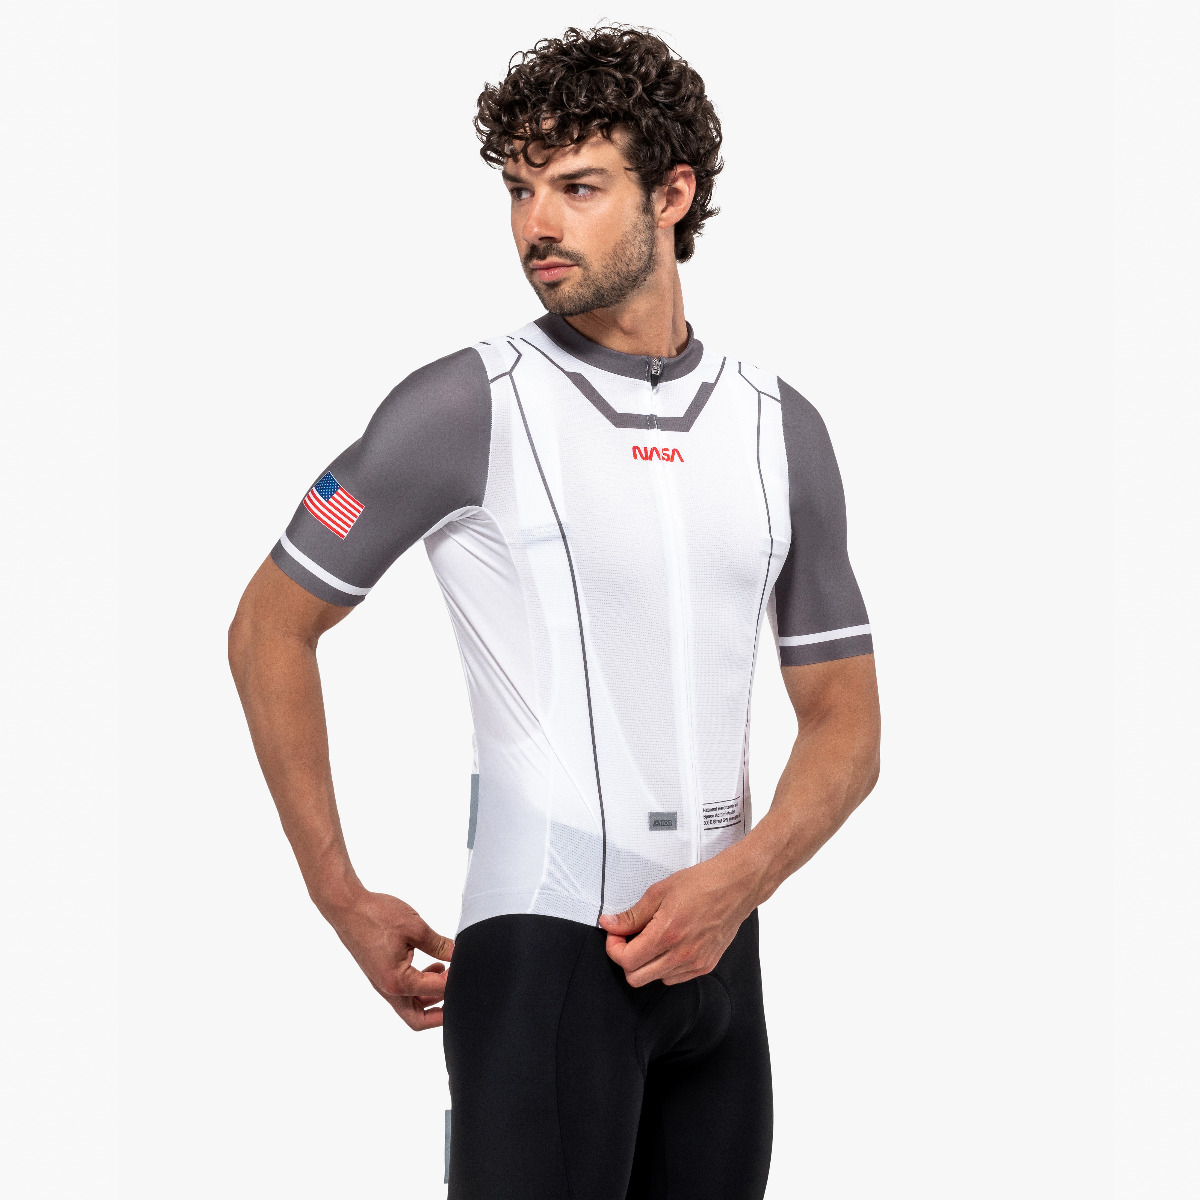 SPACE AGENCY X-OVER CYCLING JERSEY 01